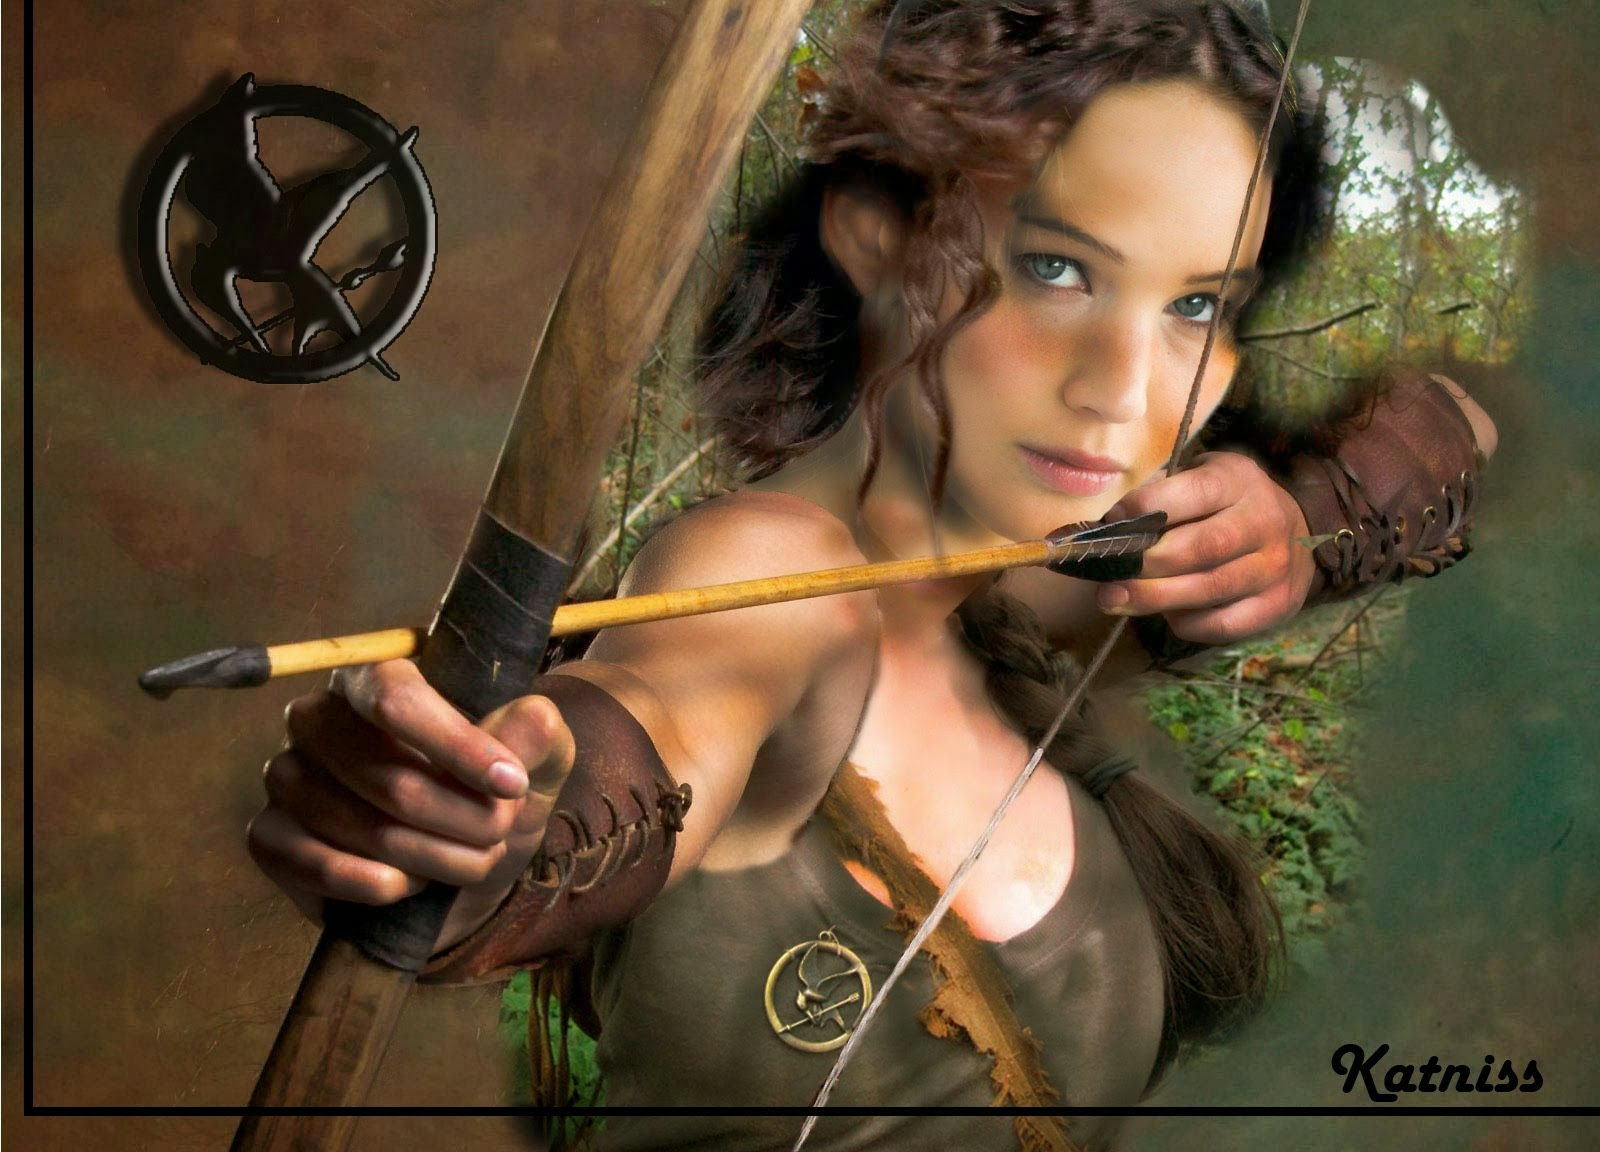 james d best was annie oakley the real katniss everdeen was annie oakley the real katniss everdeen